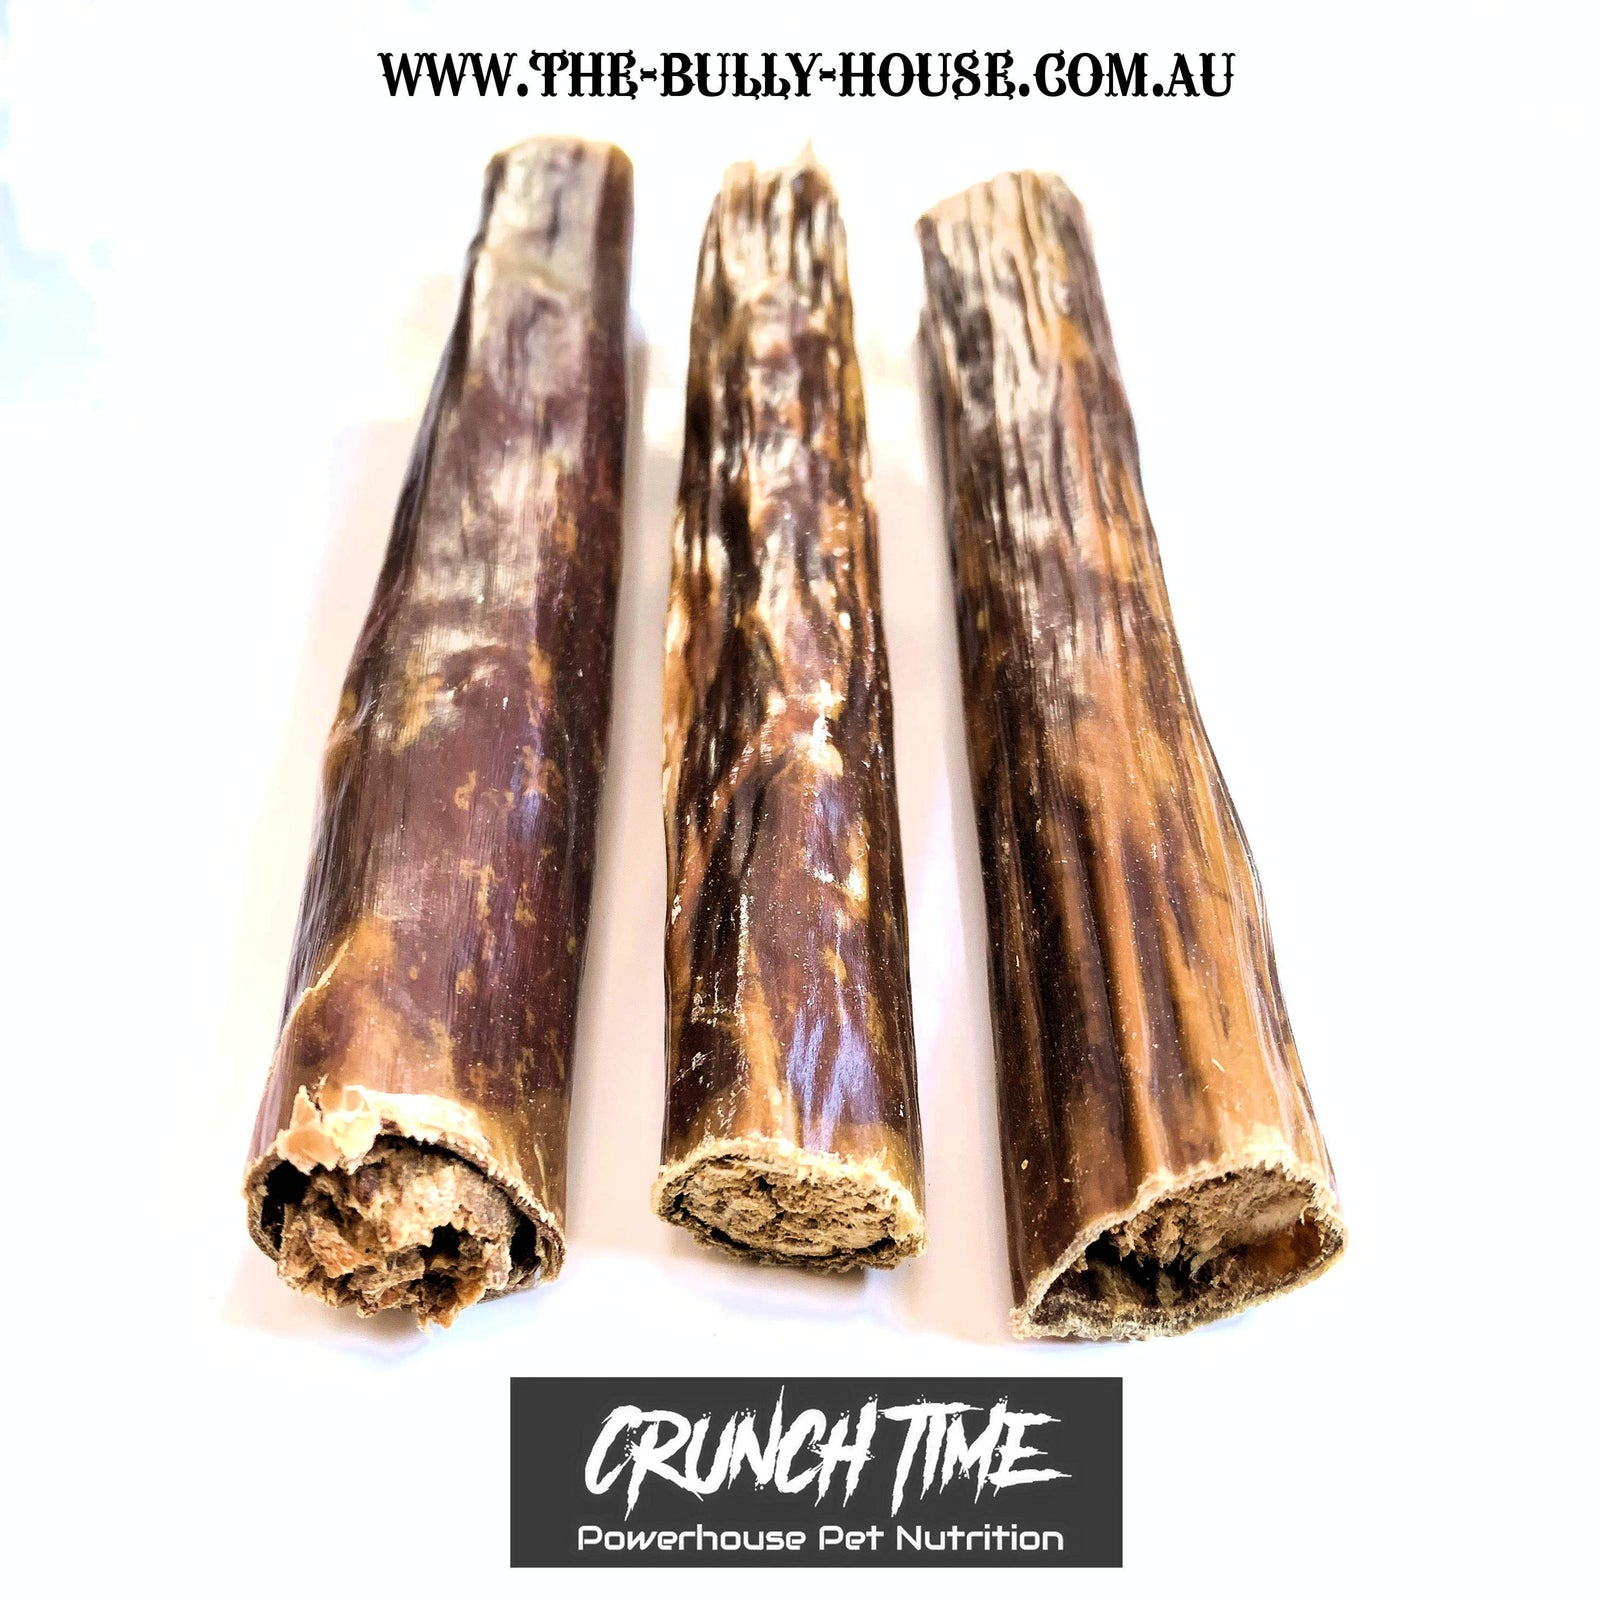 Solid Beef Tubes - Crunch time - Dog Nutrition